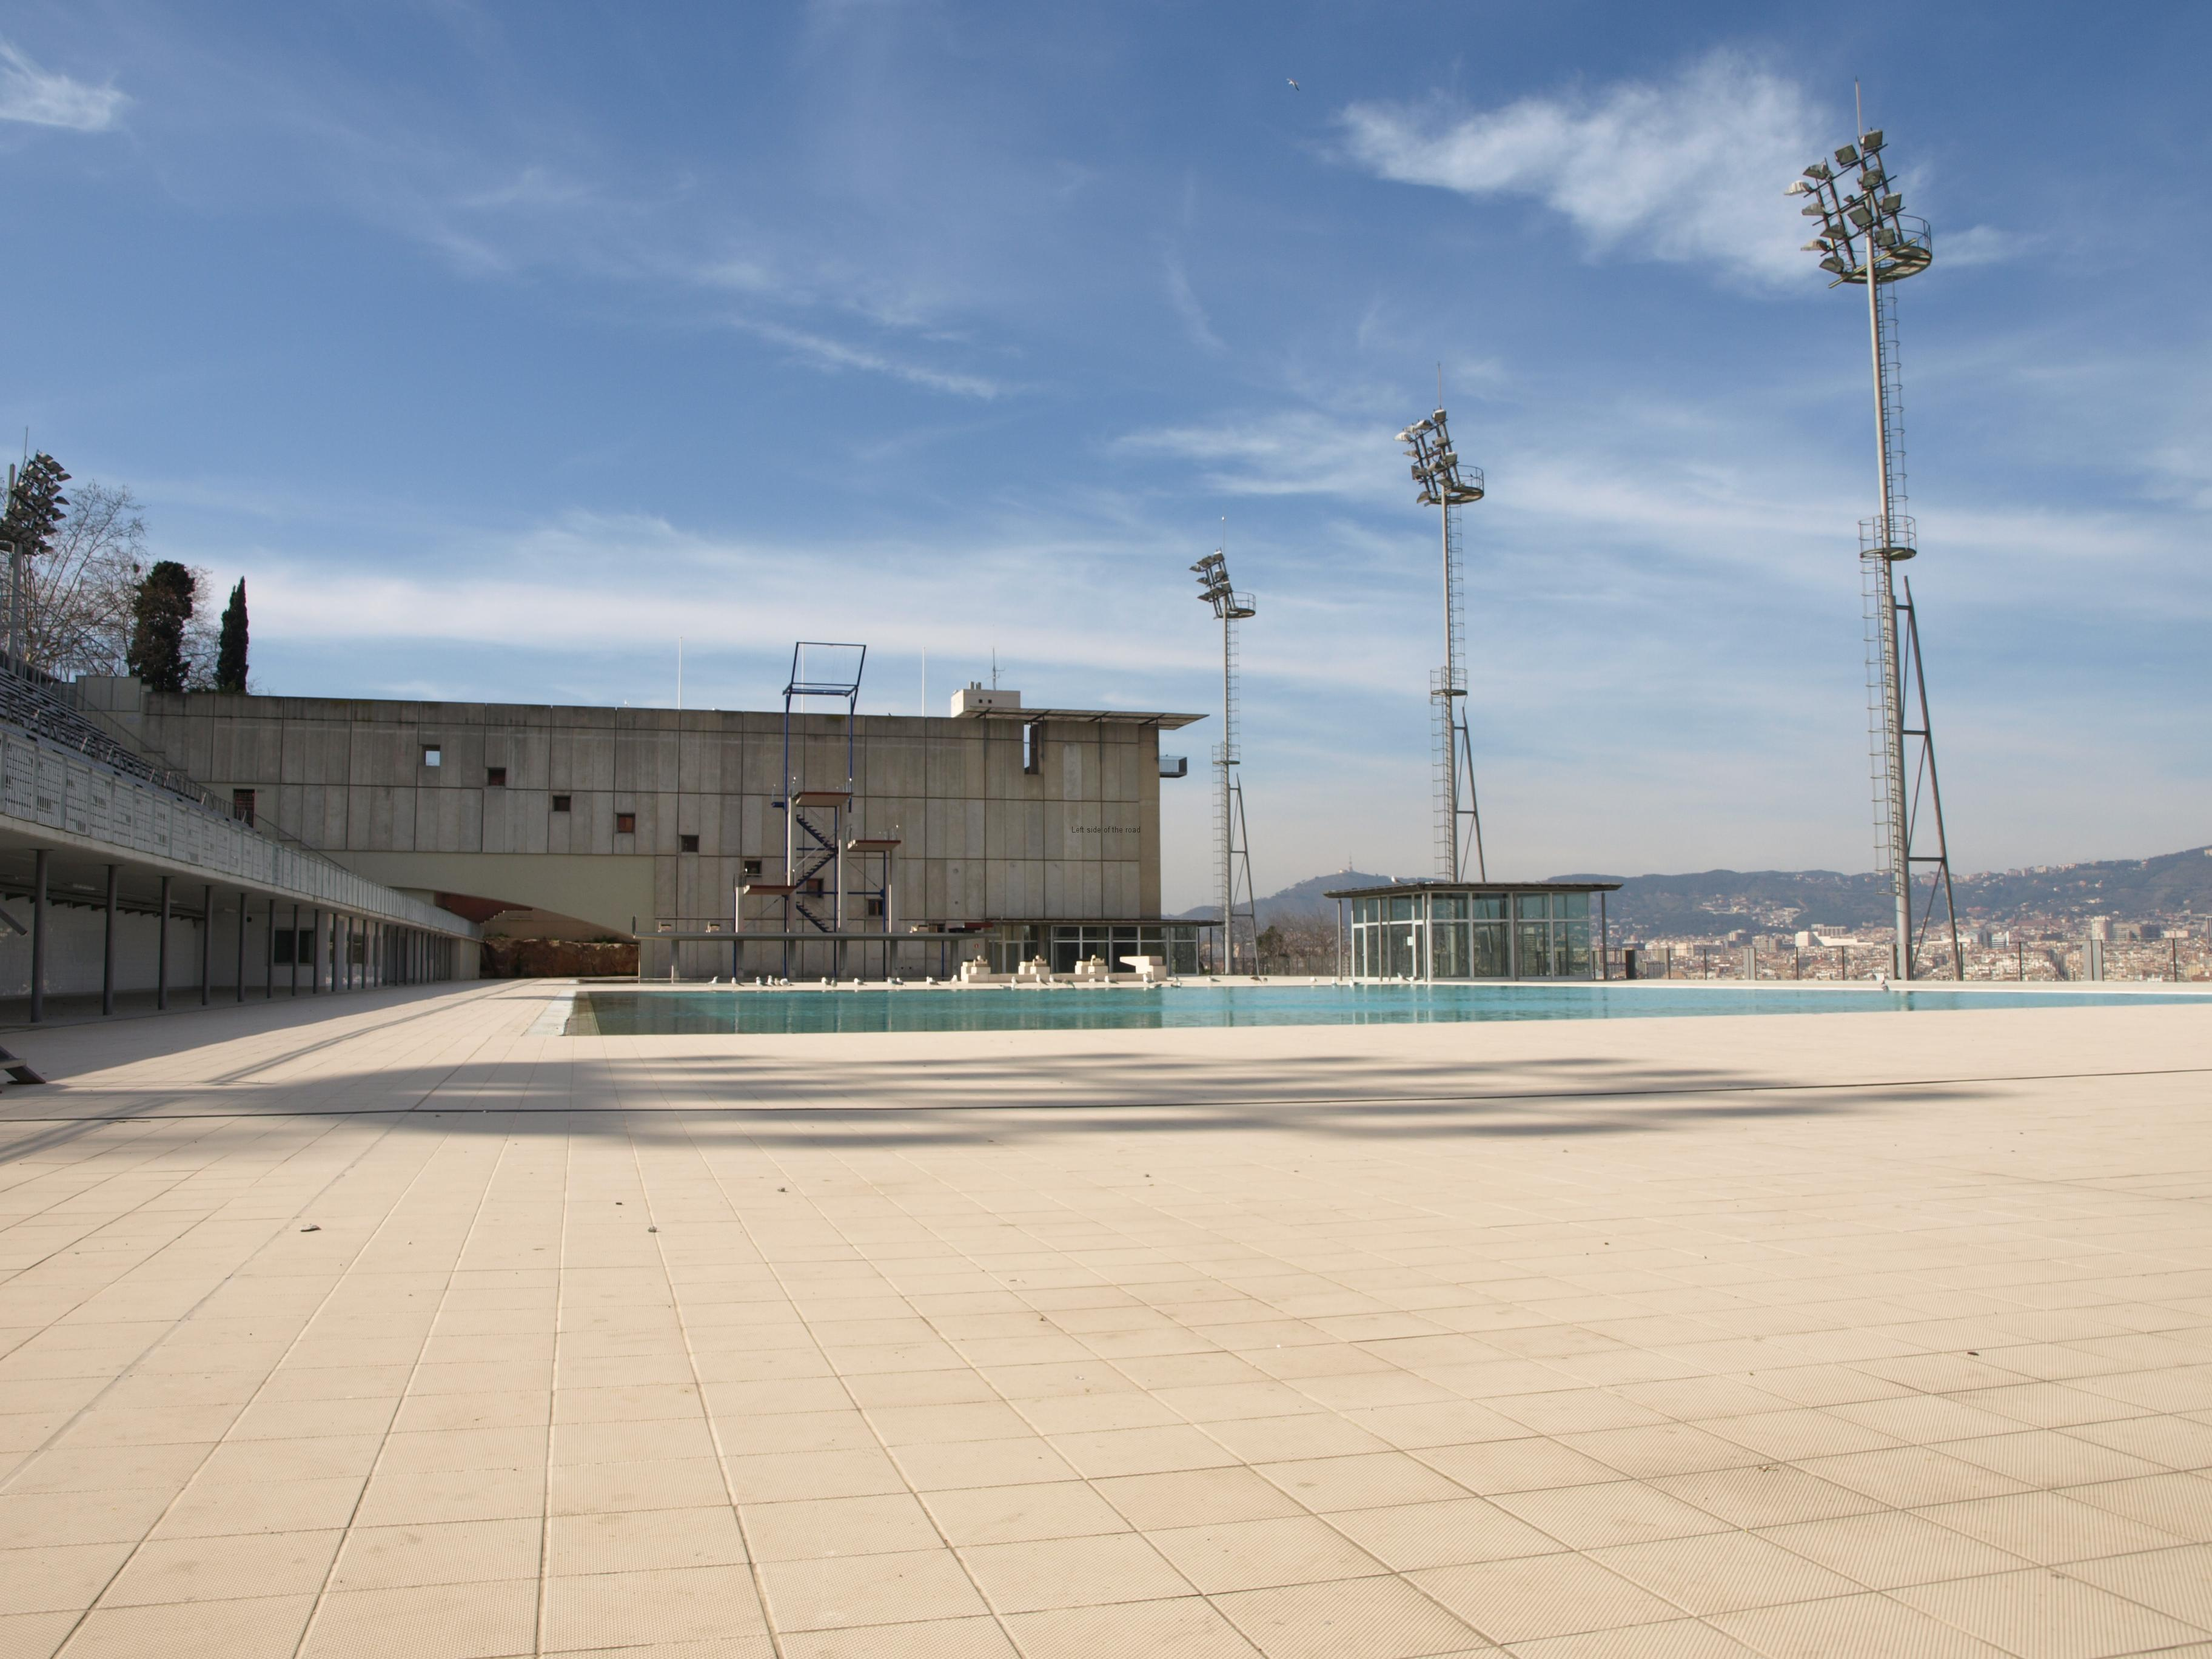 The 1992 Olympic Diving Pool in 2014